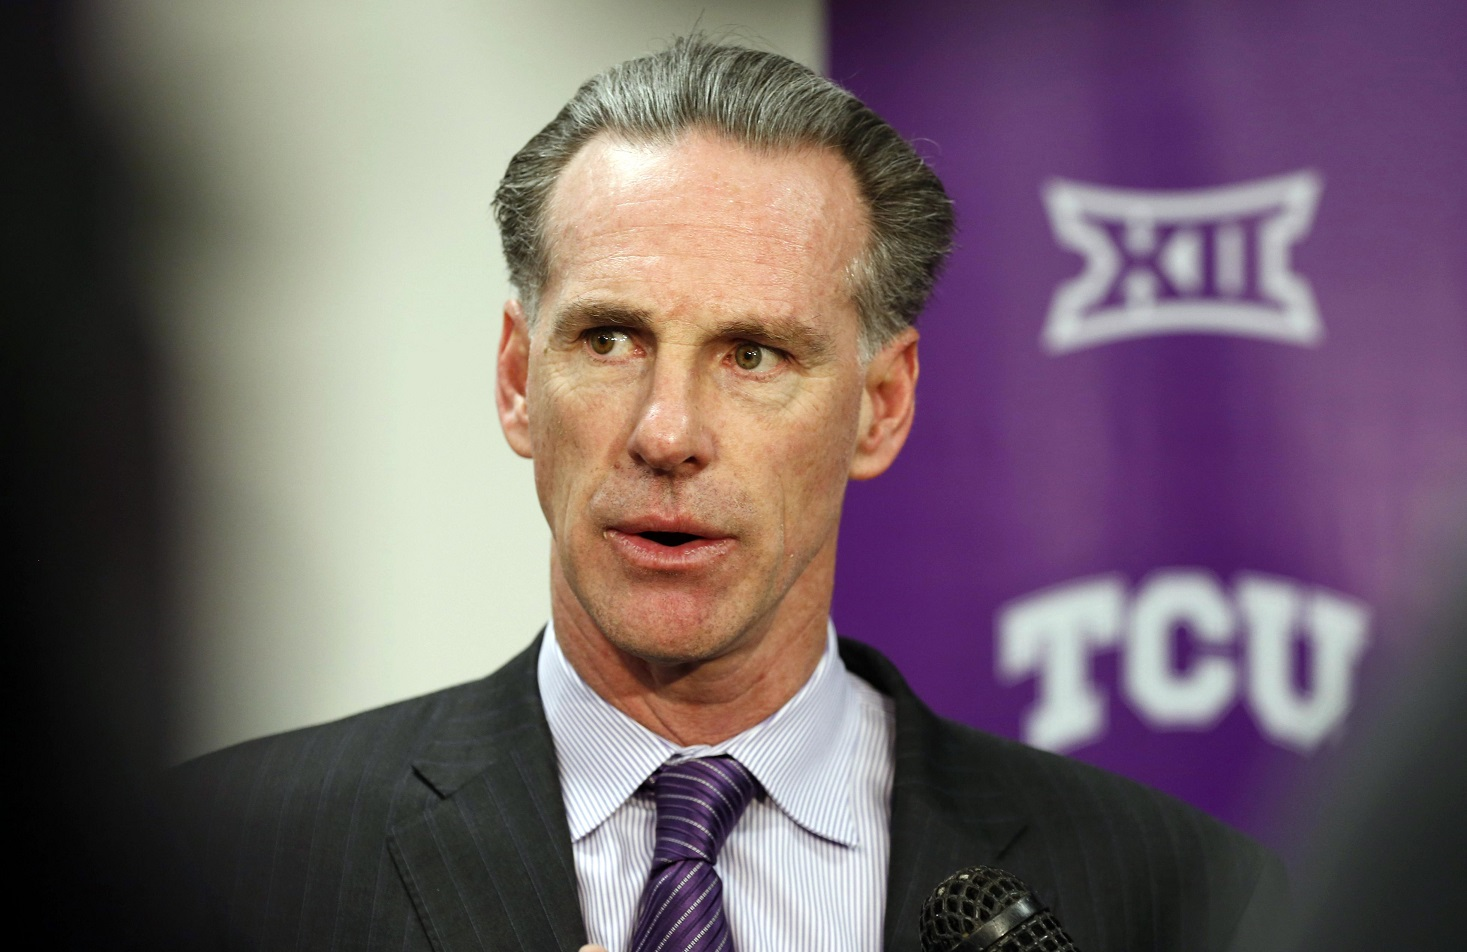 TCU brought their man home. Is Big 12 relevance next for the Horned Frogs?. (Ron T. Ennis/Fort Worth Star-Telegram)